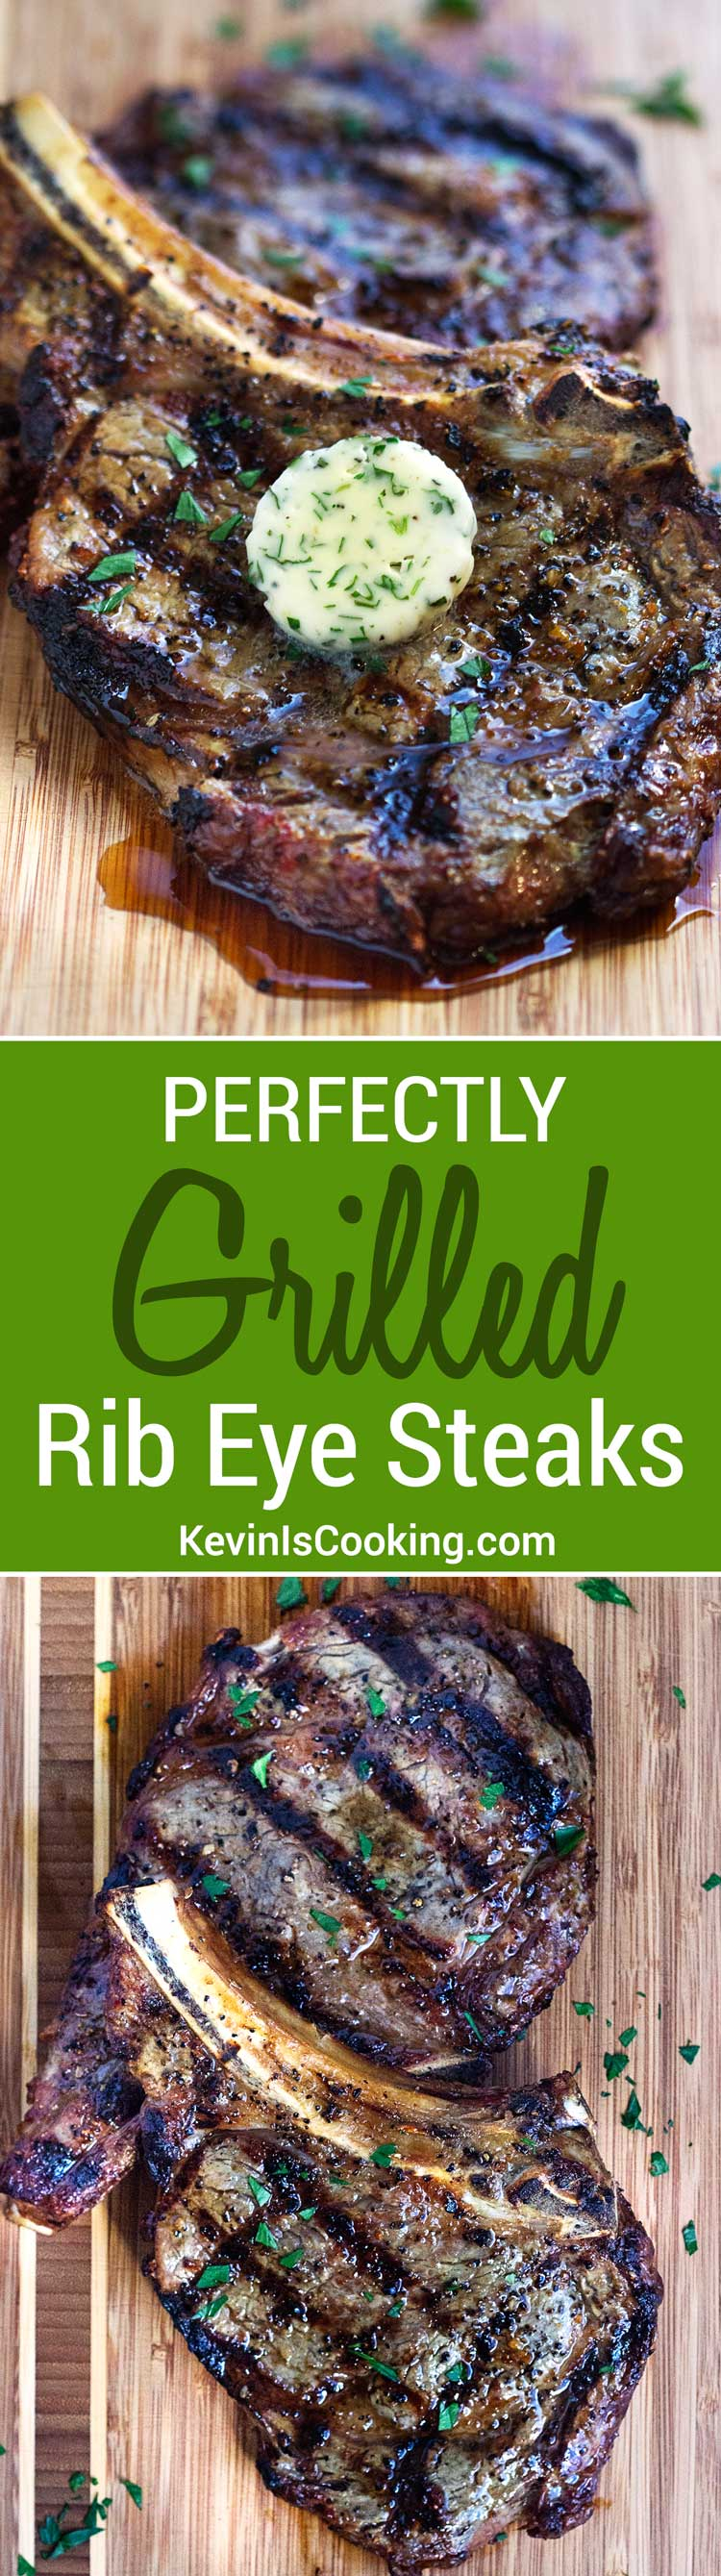 These Perfect Rib Eye Steaks have a seasoning that includes dill seed and orange zest and after grilling is topped with compound butter. Steak lover heaven!